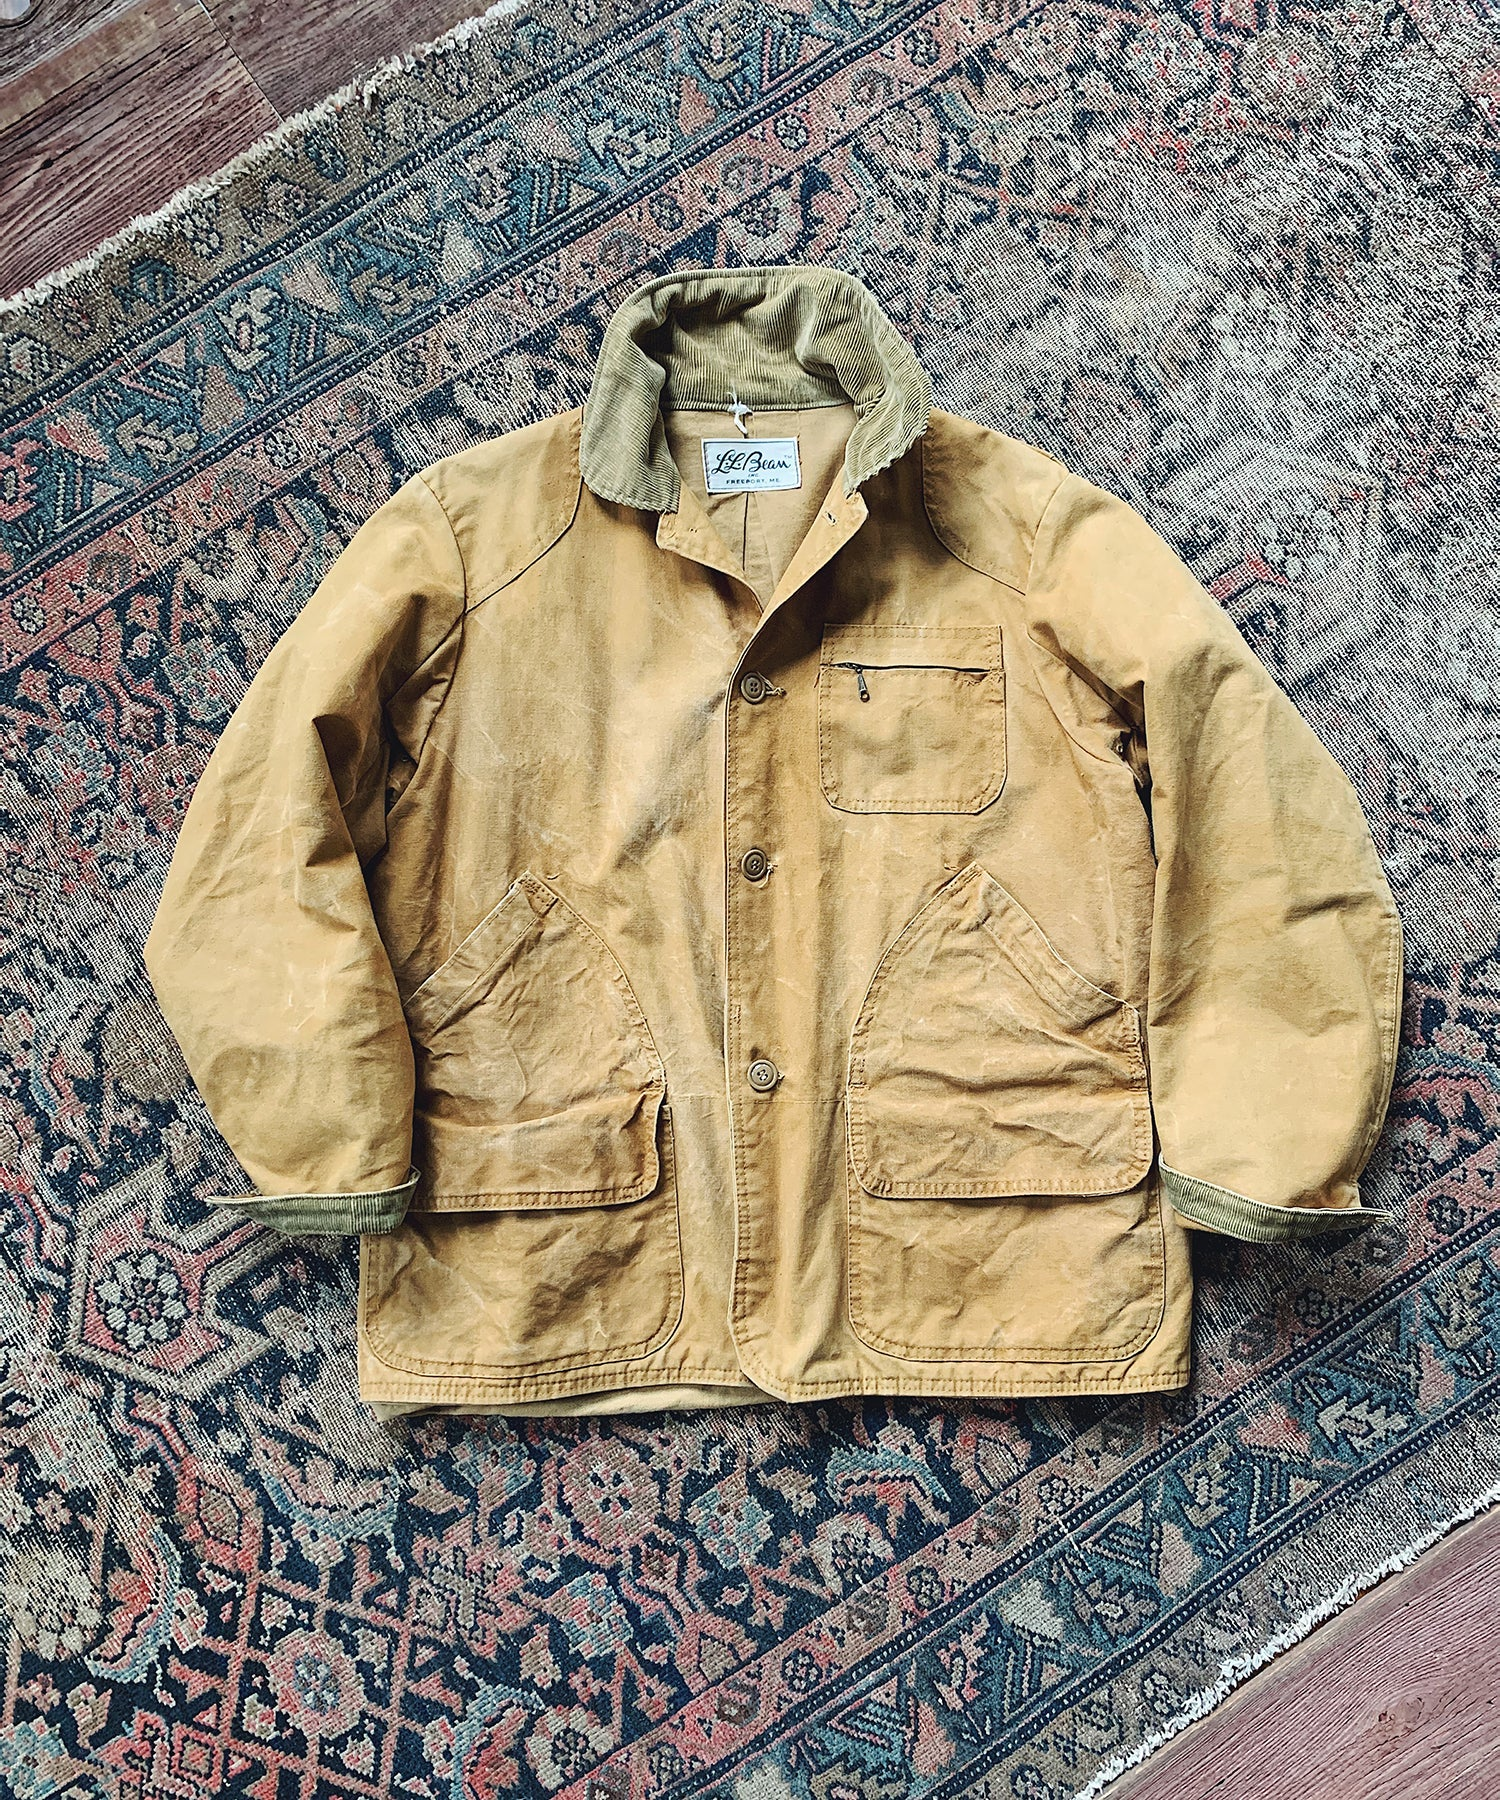 Item #22 - Todd Snyder x Wooden Sleepers 1970's Field Coat in Tan - SOLD OUT